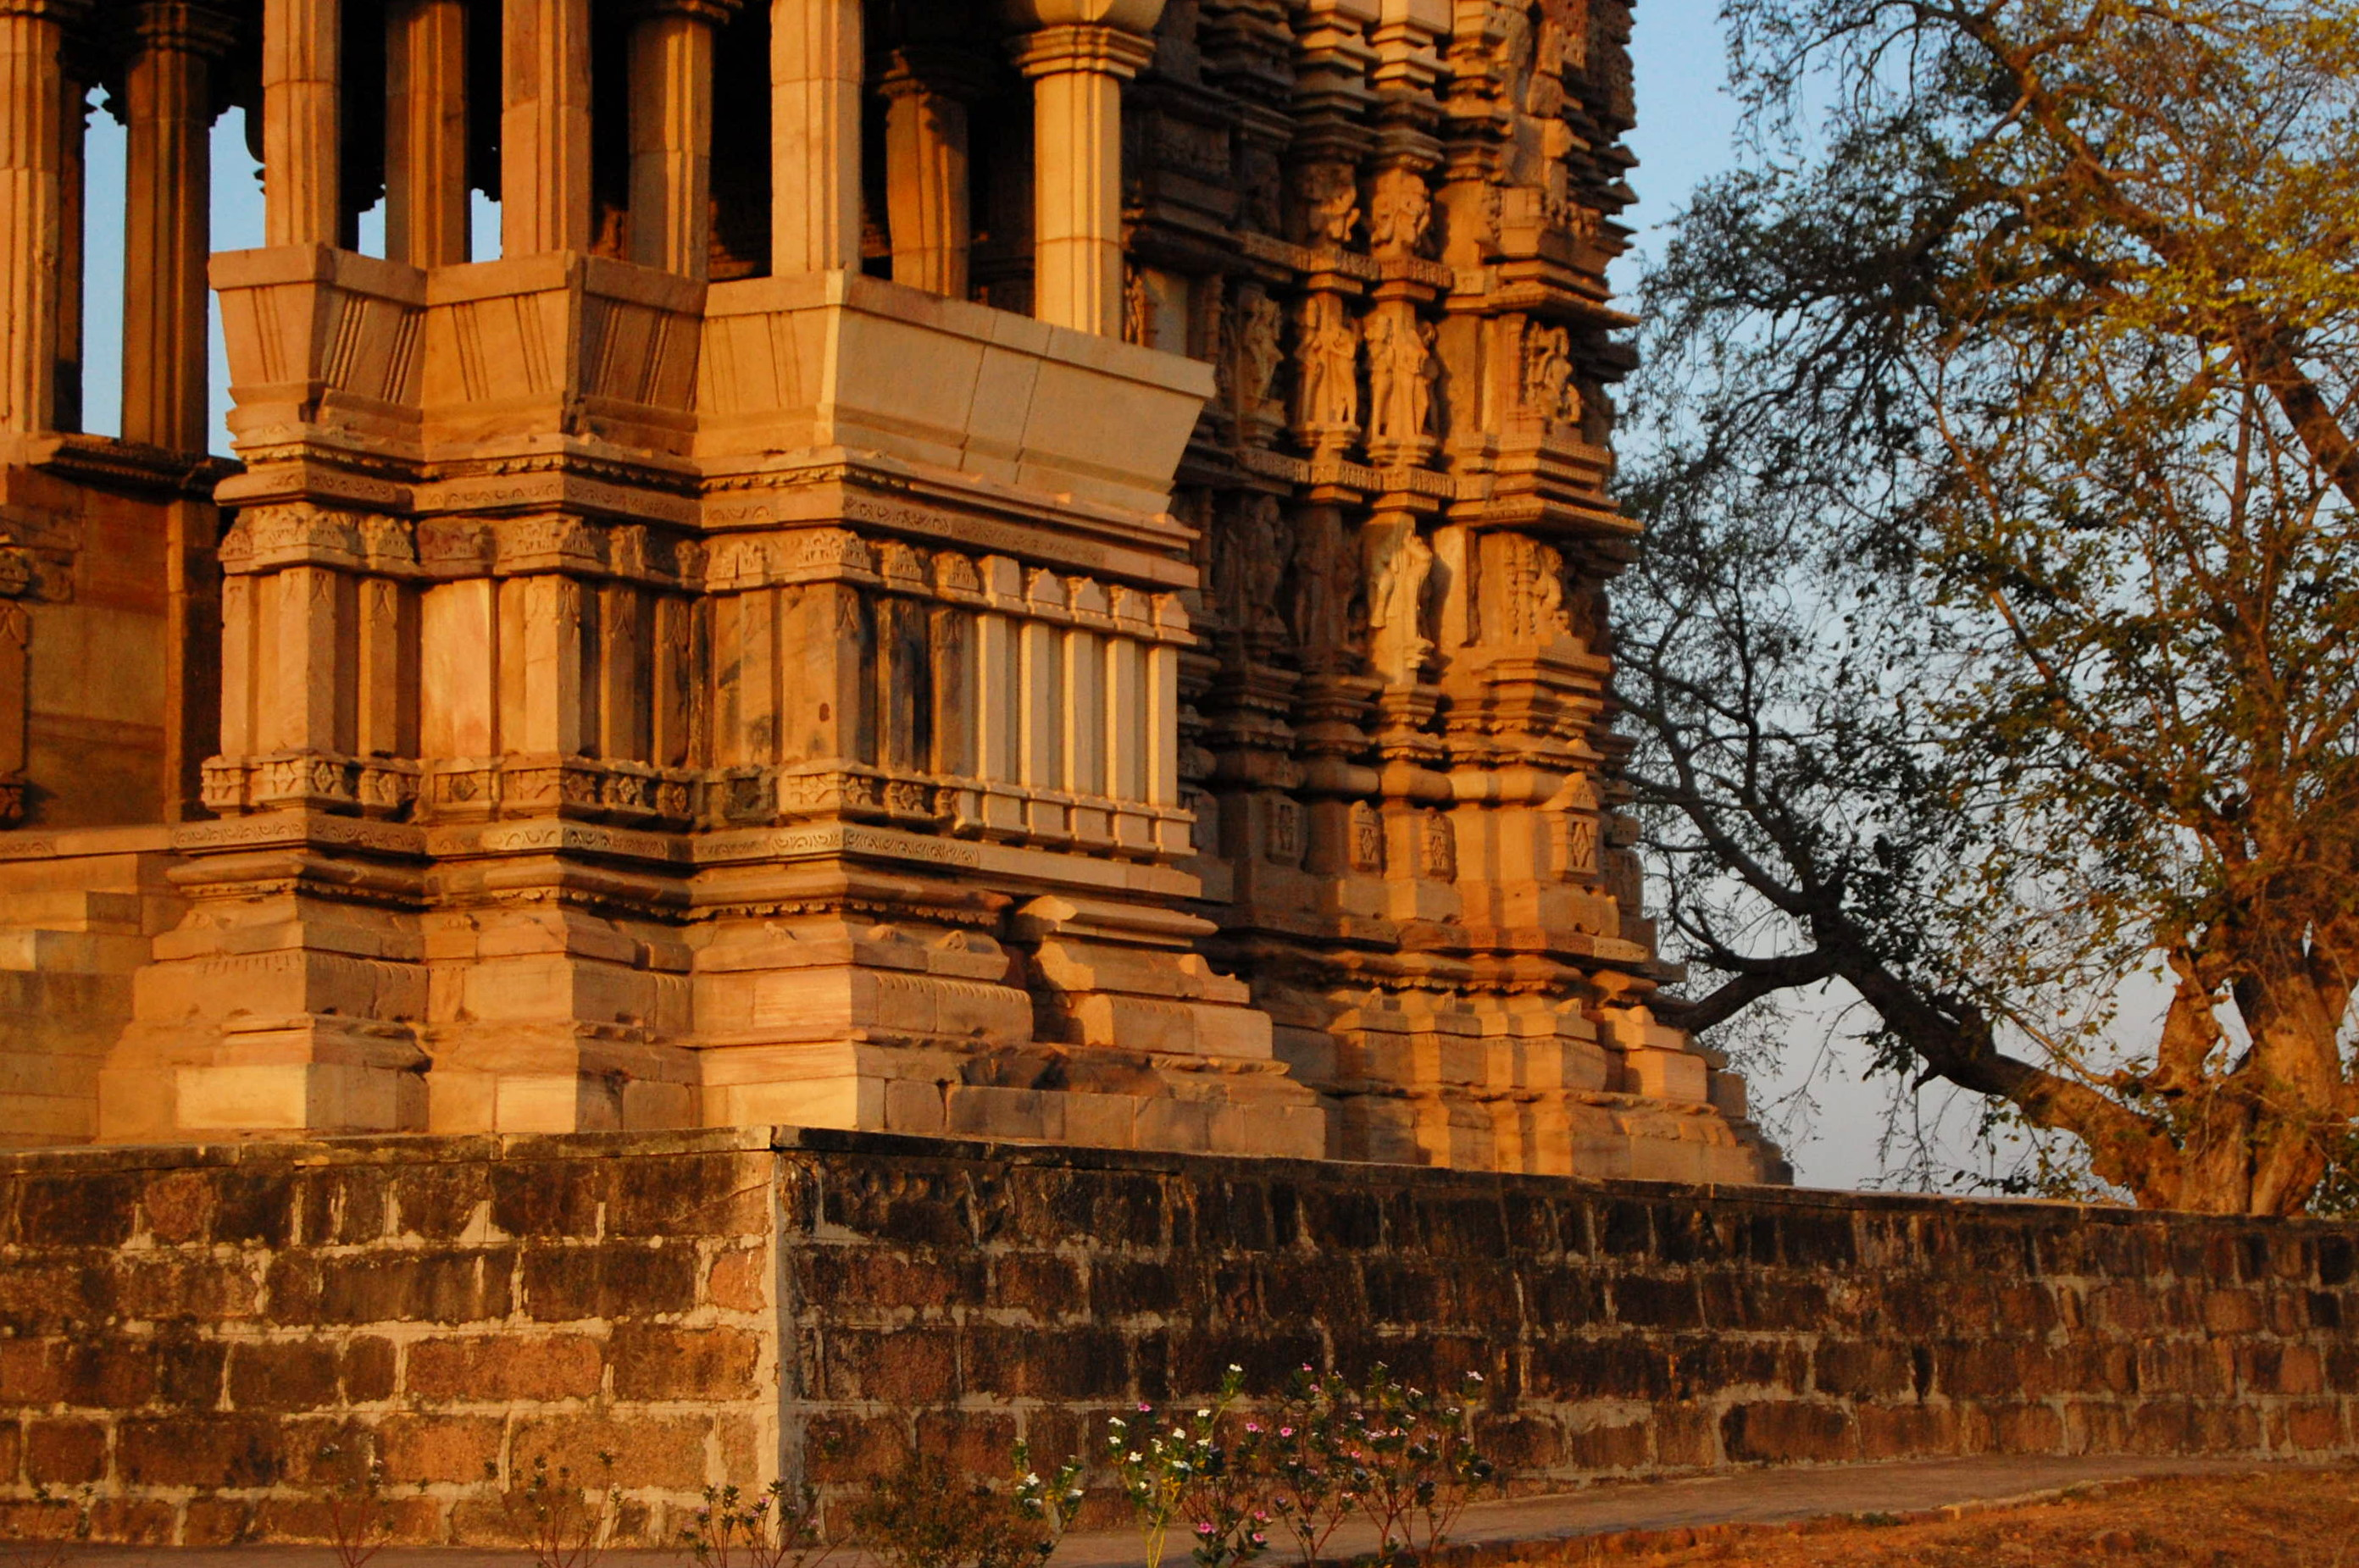 The Chaturbhuja temple, Madhya Pradesh. Credit: ptwo/Flickr, CC BY 2.0